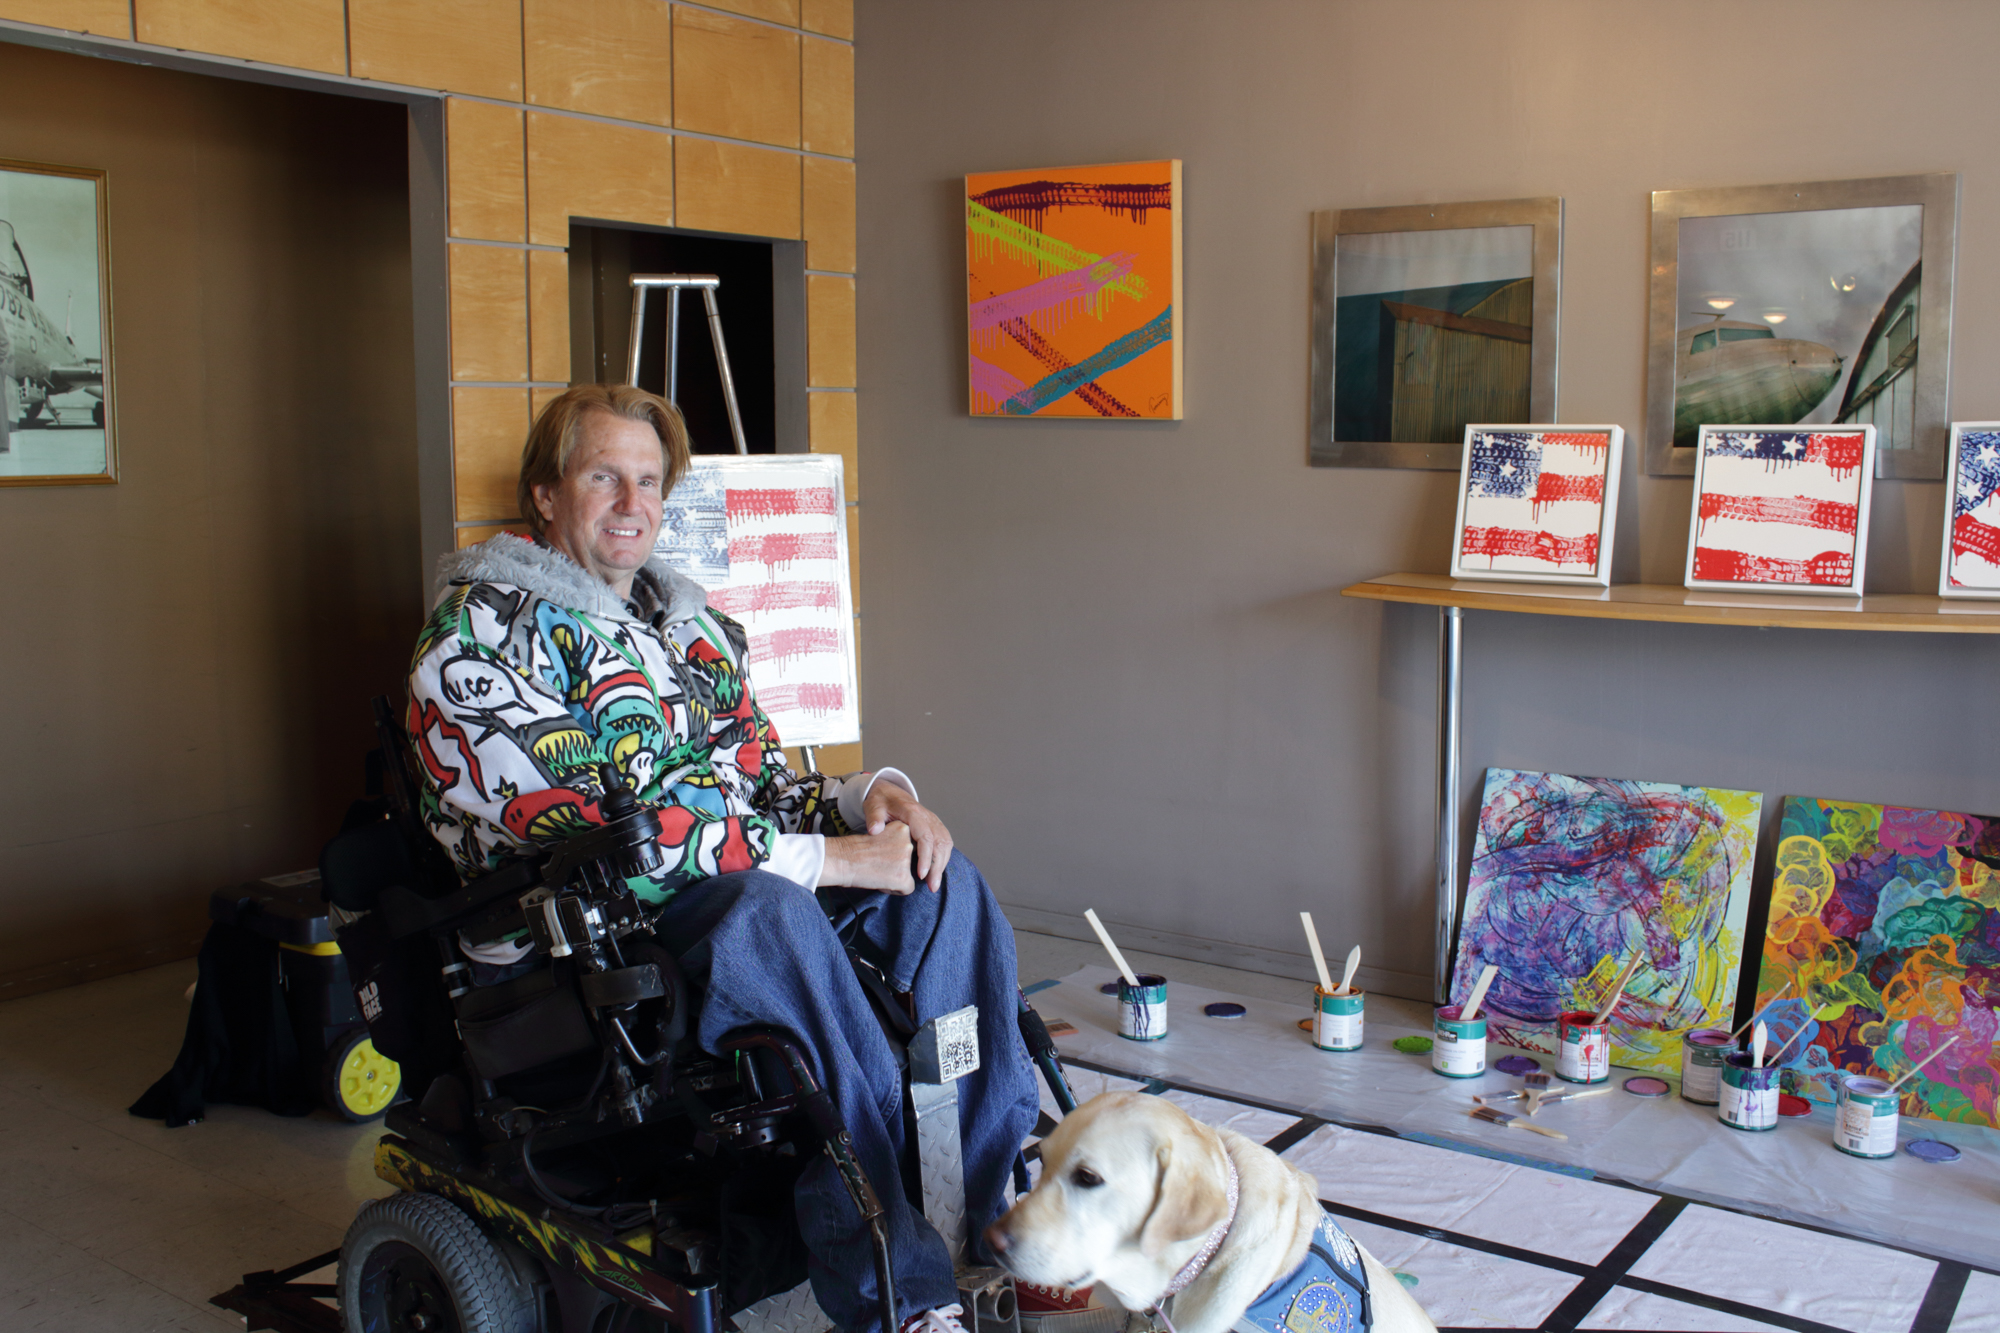 Tommy Hollenstein, wheelchair-bound quadriplegic artist, poses with his artwork made with the wheels of his wheelchair and service dog at the 12 Annual Santa Monica ArtWalk on March 24th, 2018 in Santa Monica, California. (Heather Creamer/ Corsair Photo)